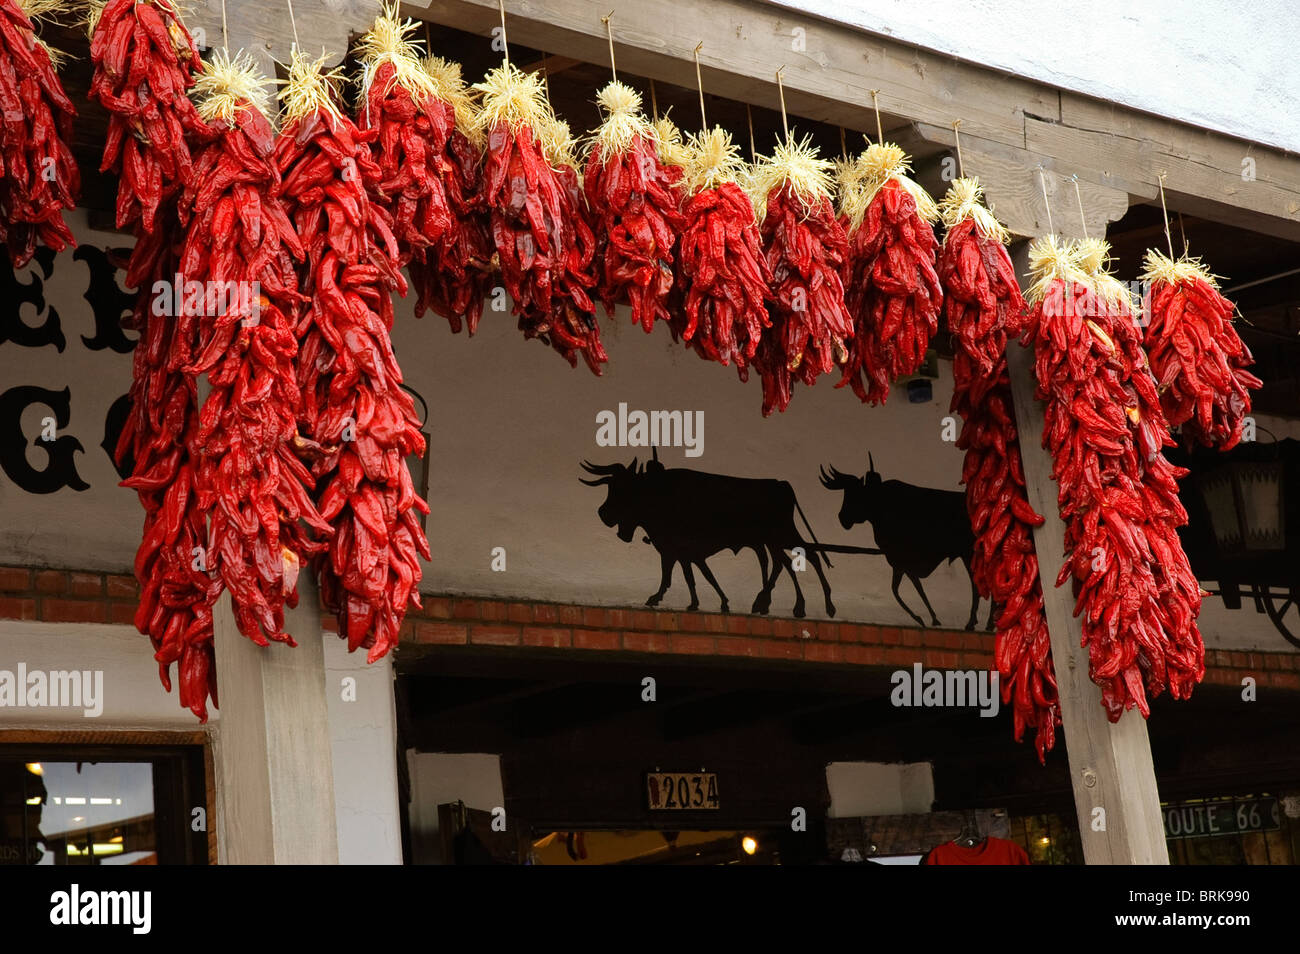 Hanging Chili Pepper Decorations Stock Photos Hanging